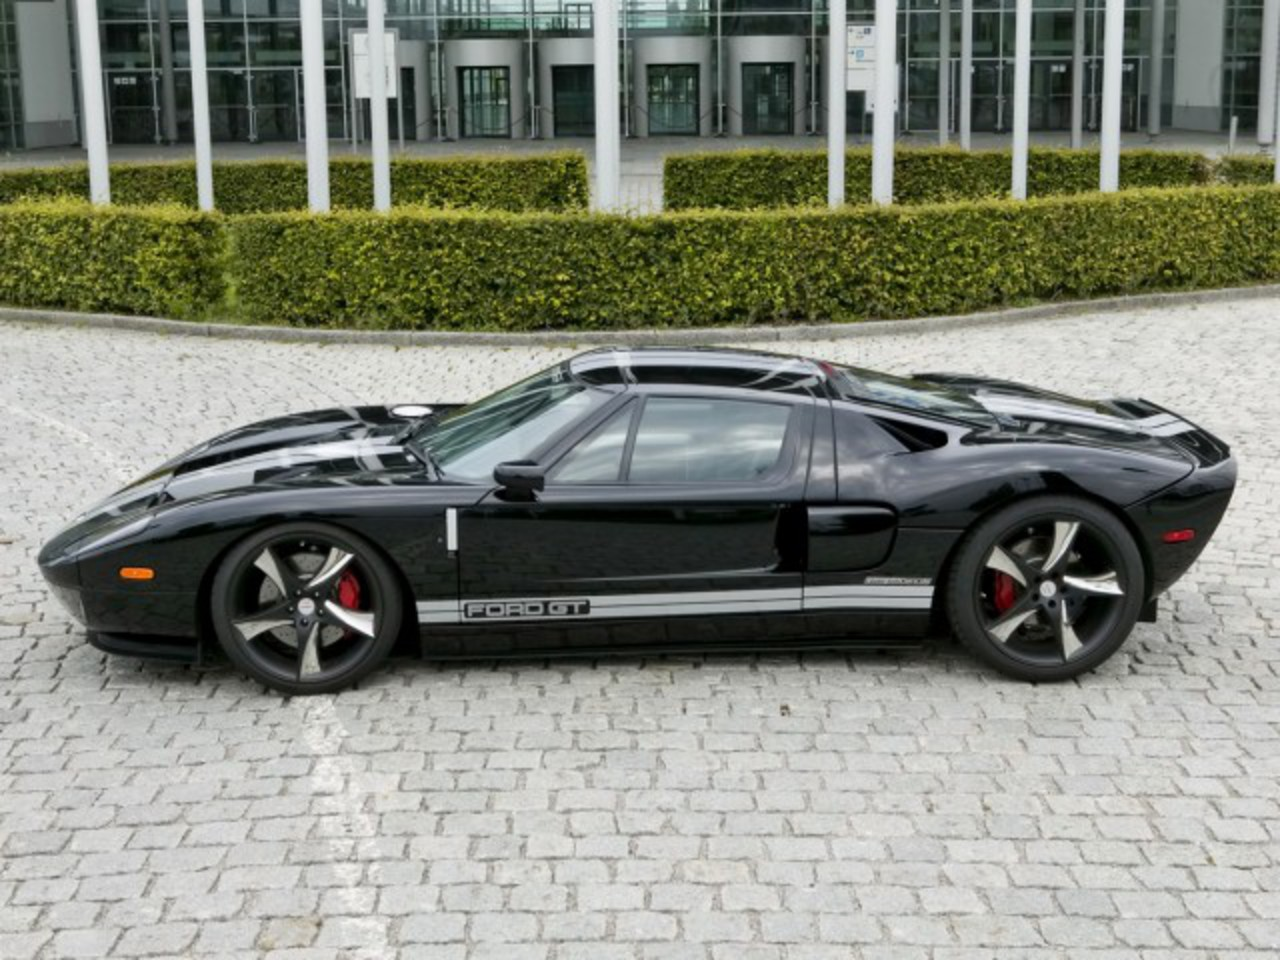 Ford GT: 02 photo